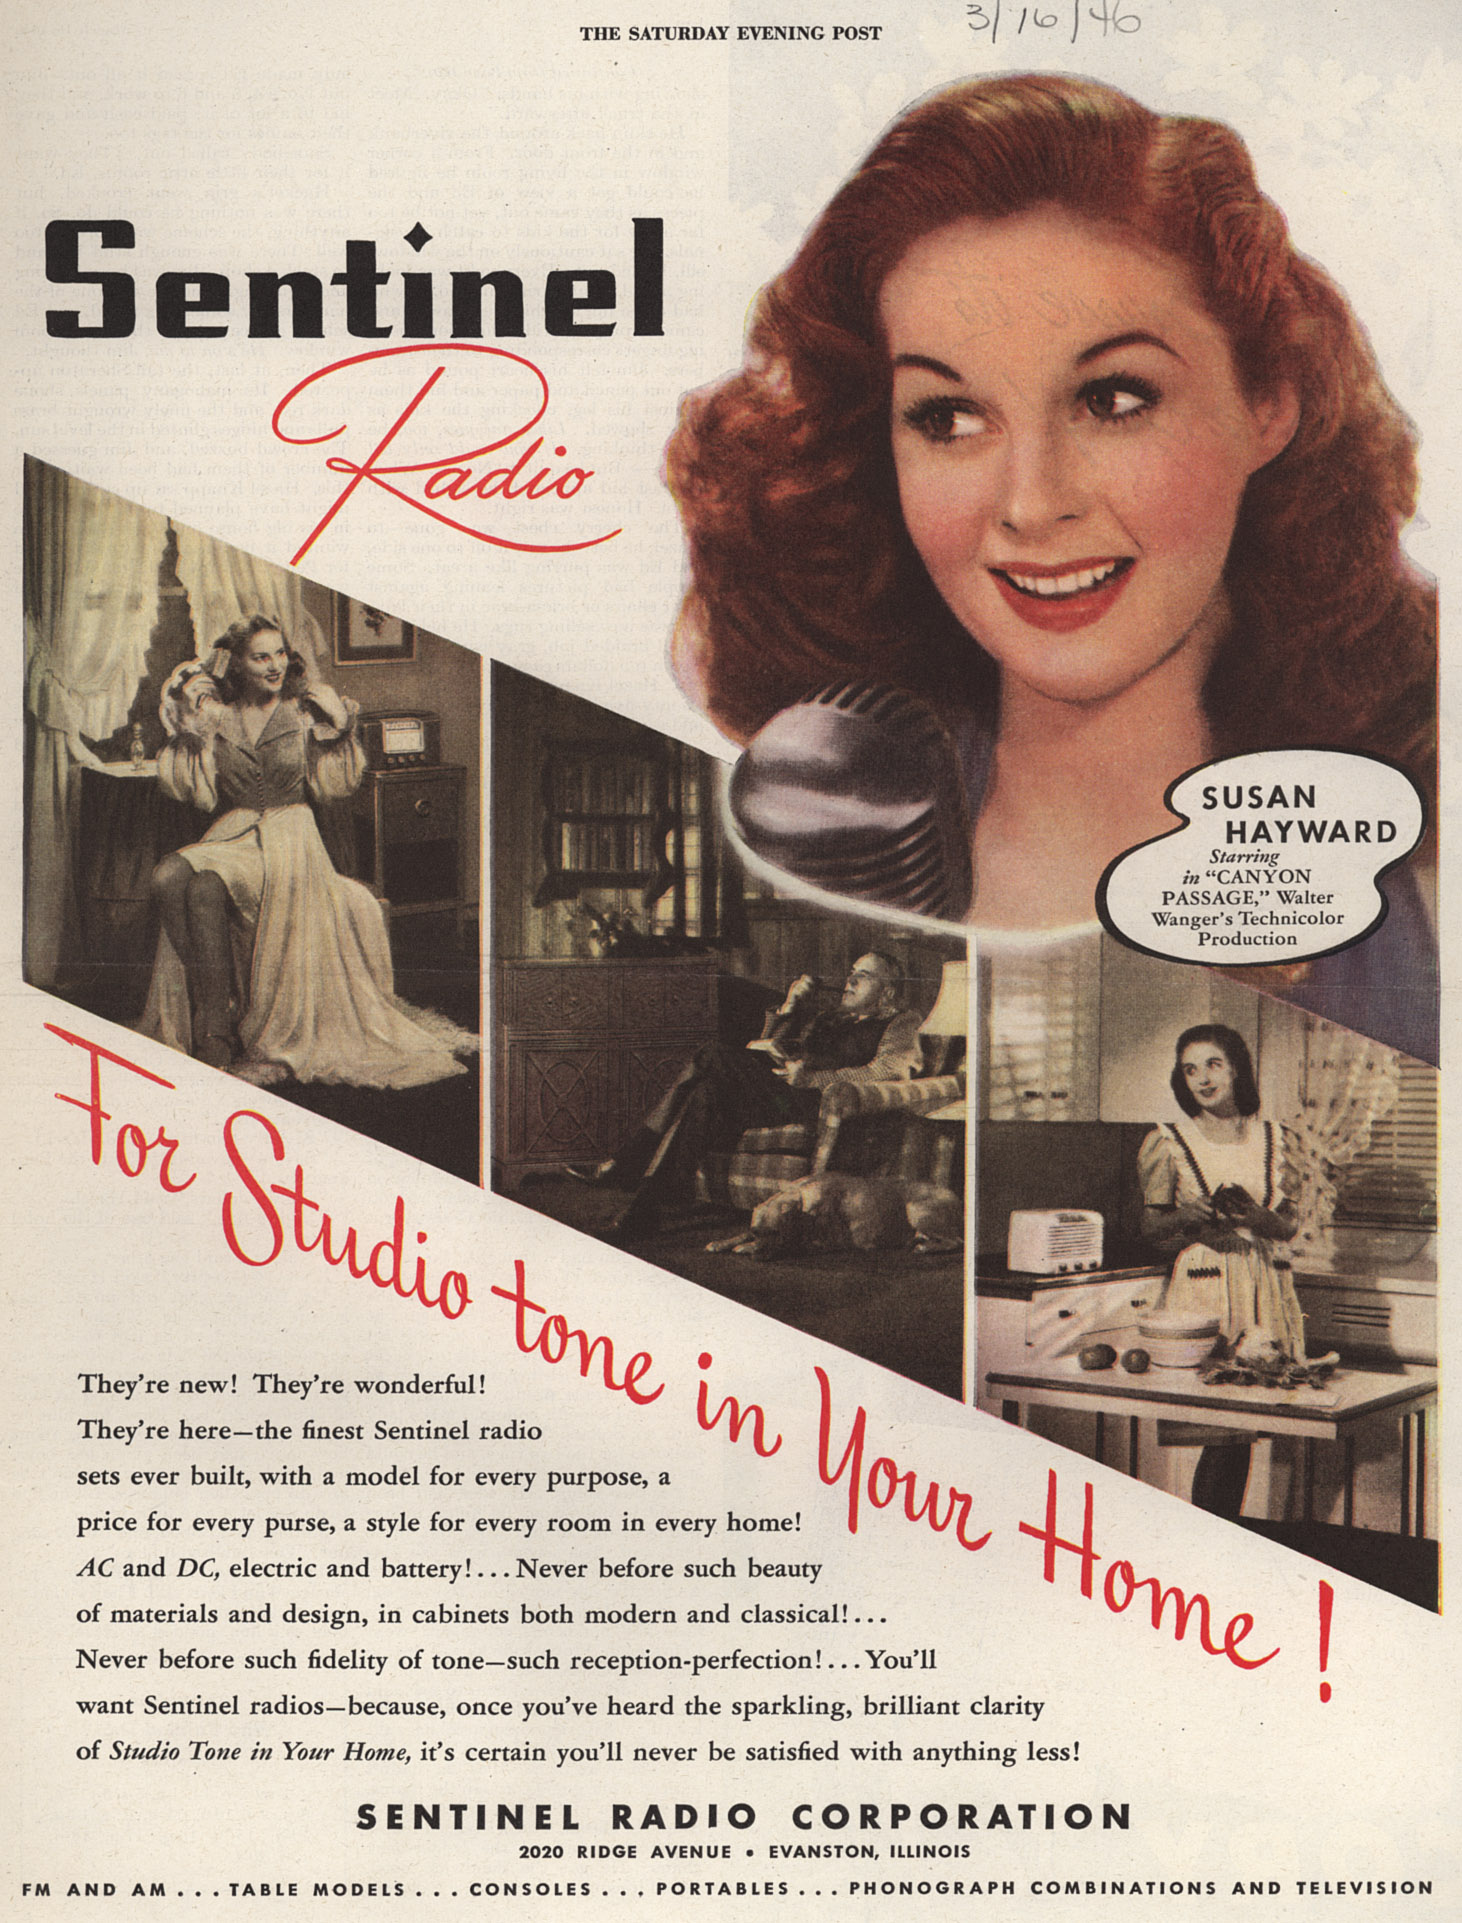 Sentinel_Radio_for_Studio_tone_In_your_Home3